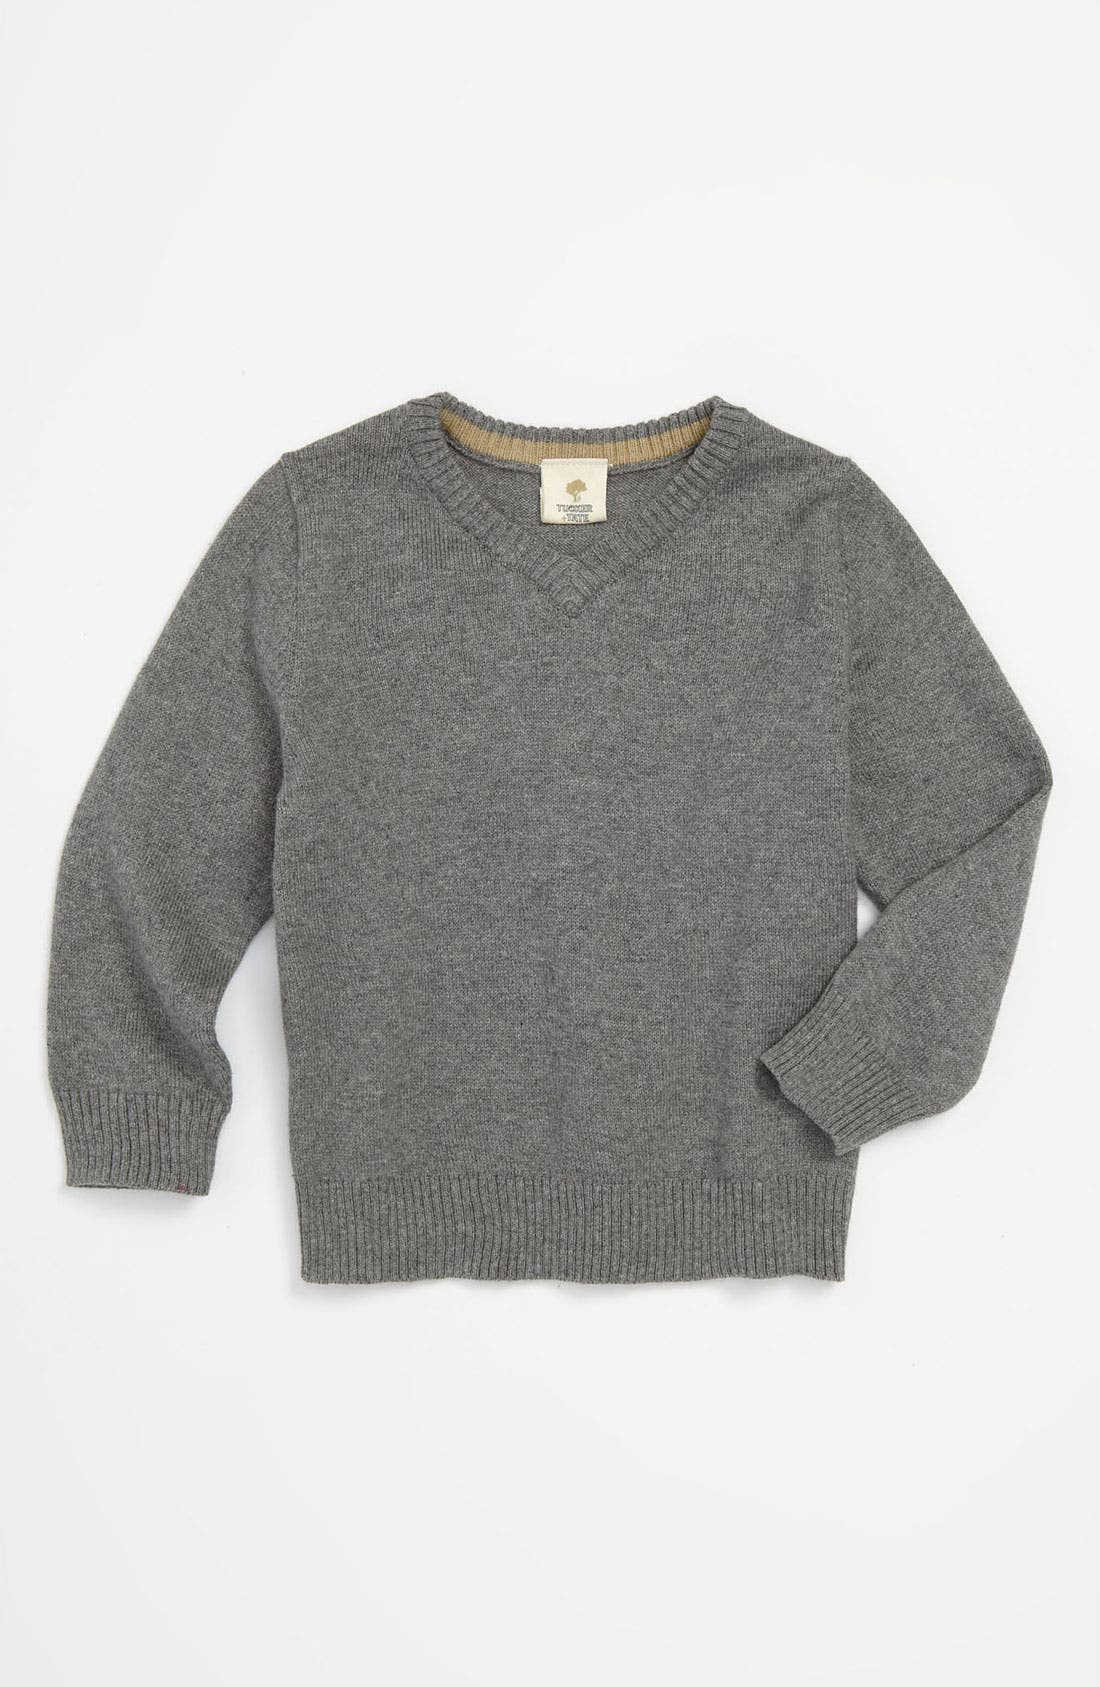 Main Image - Tucker + Tate 'Atticus' Sweater (Toddler)